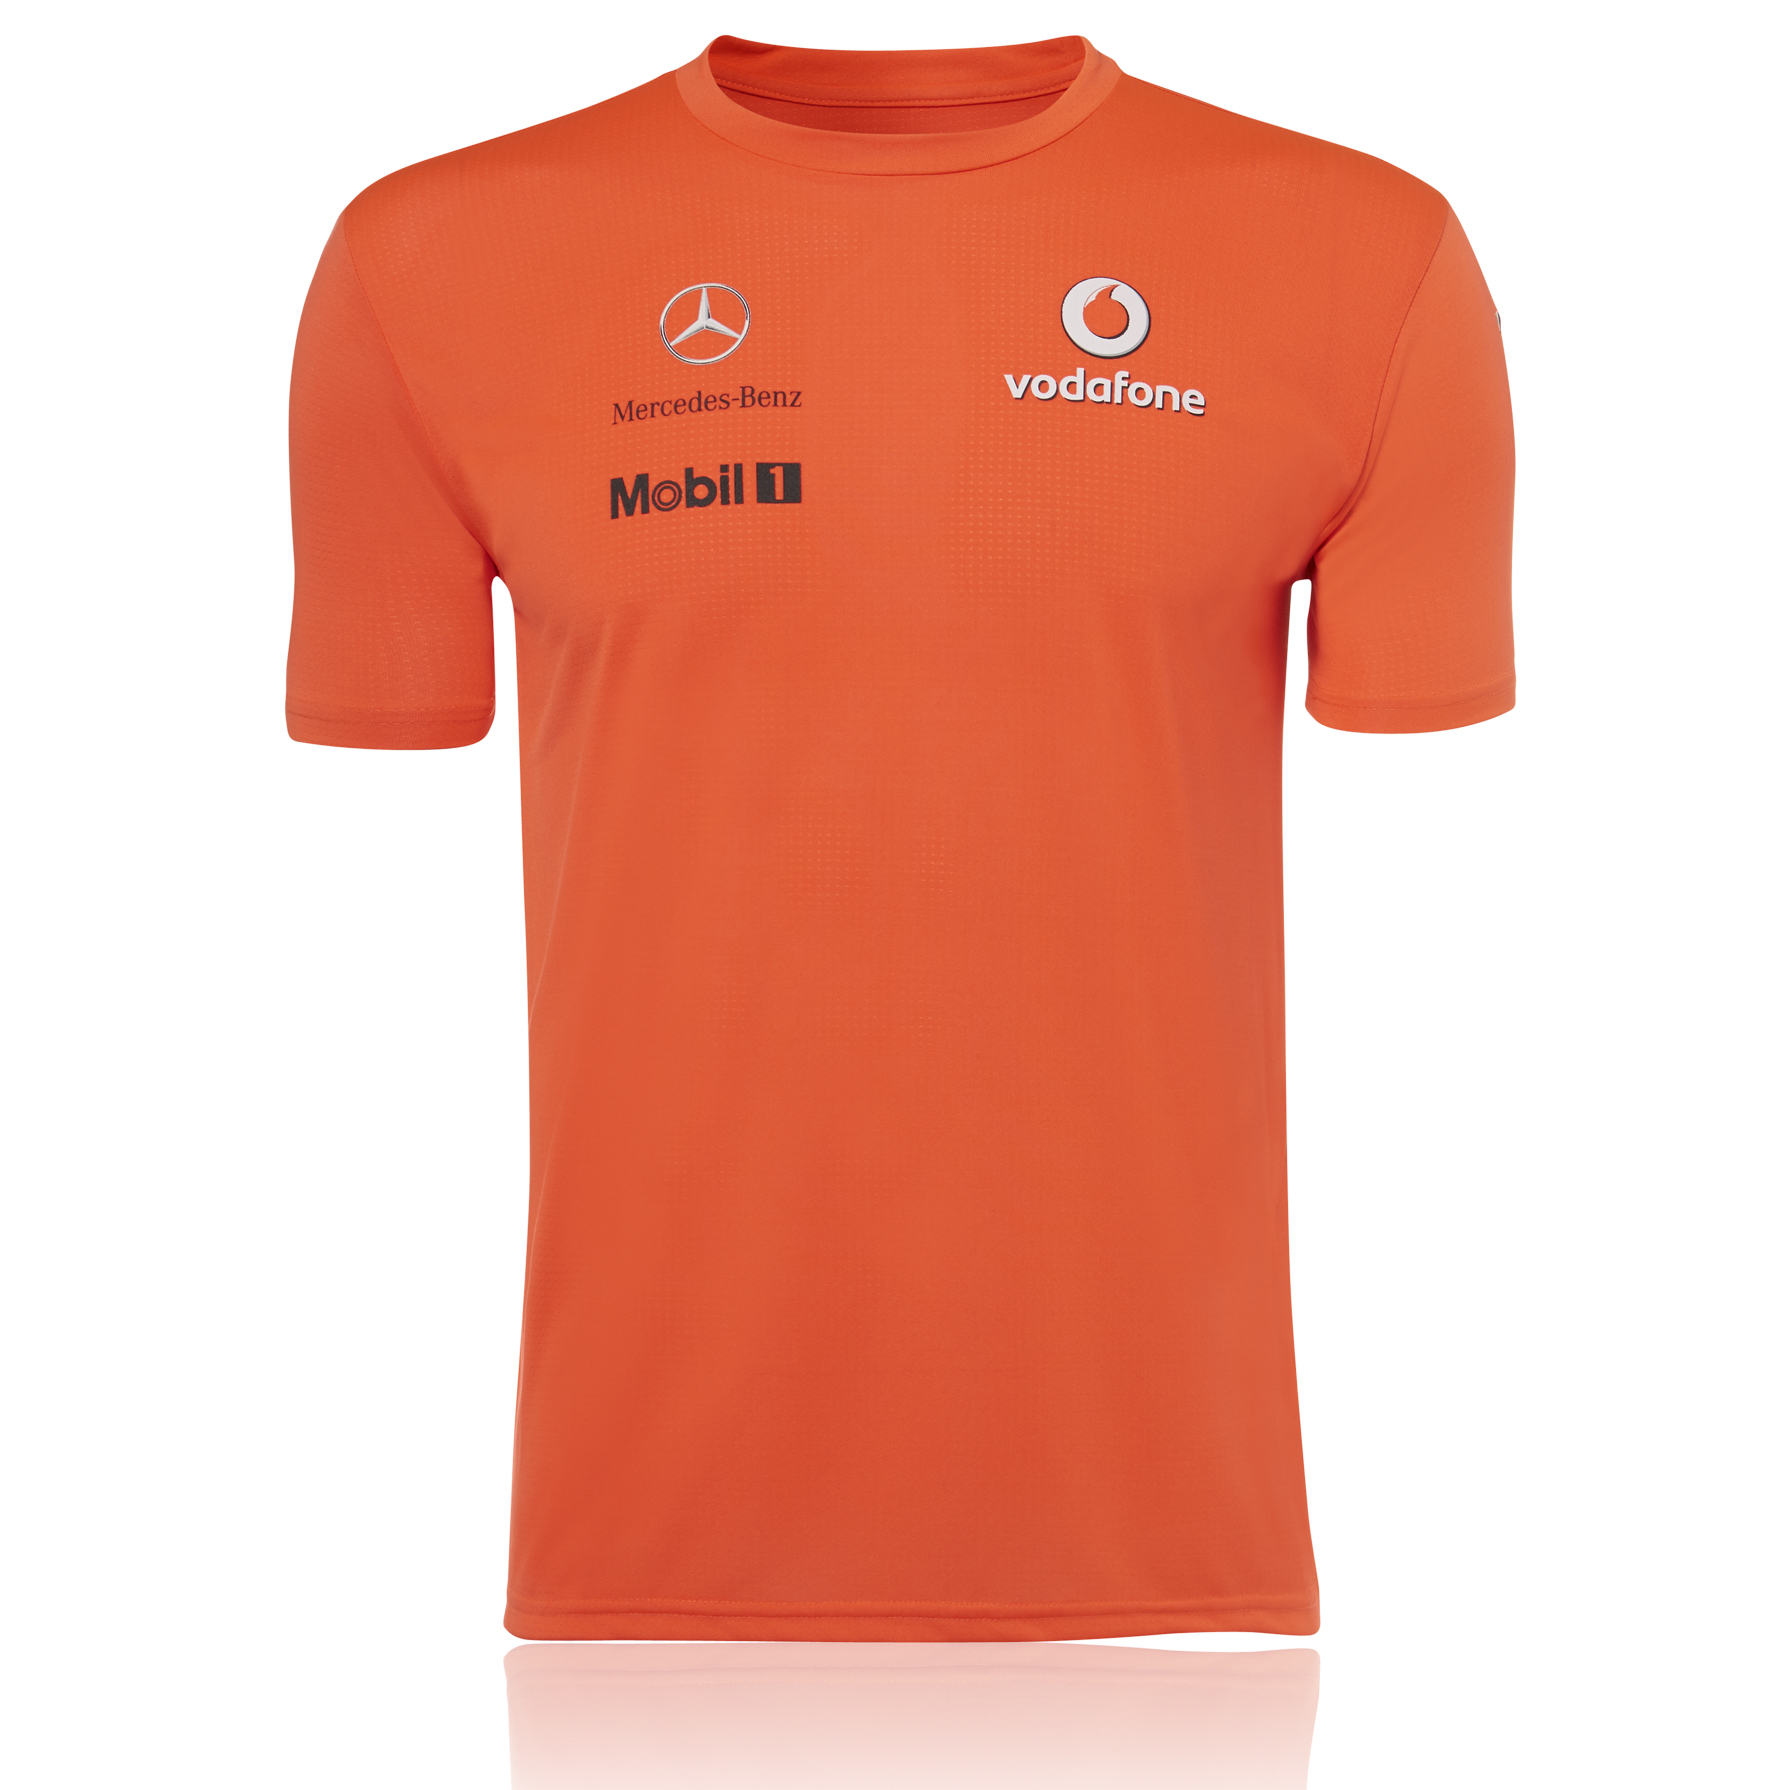 Vodafone McLaren Mercedes 2013 Team Victory T-Shirt